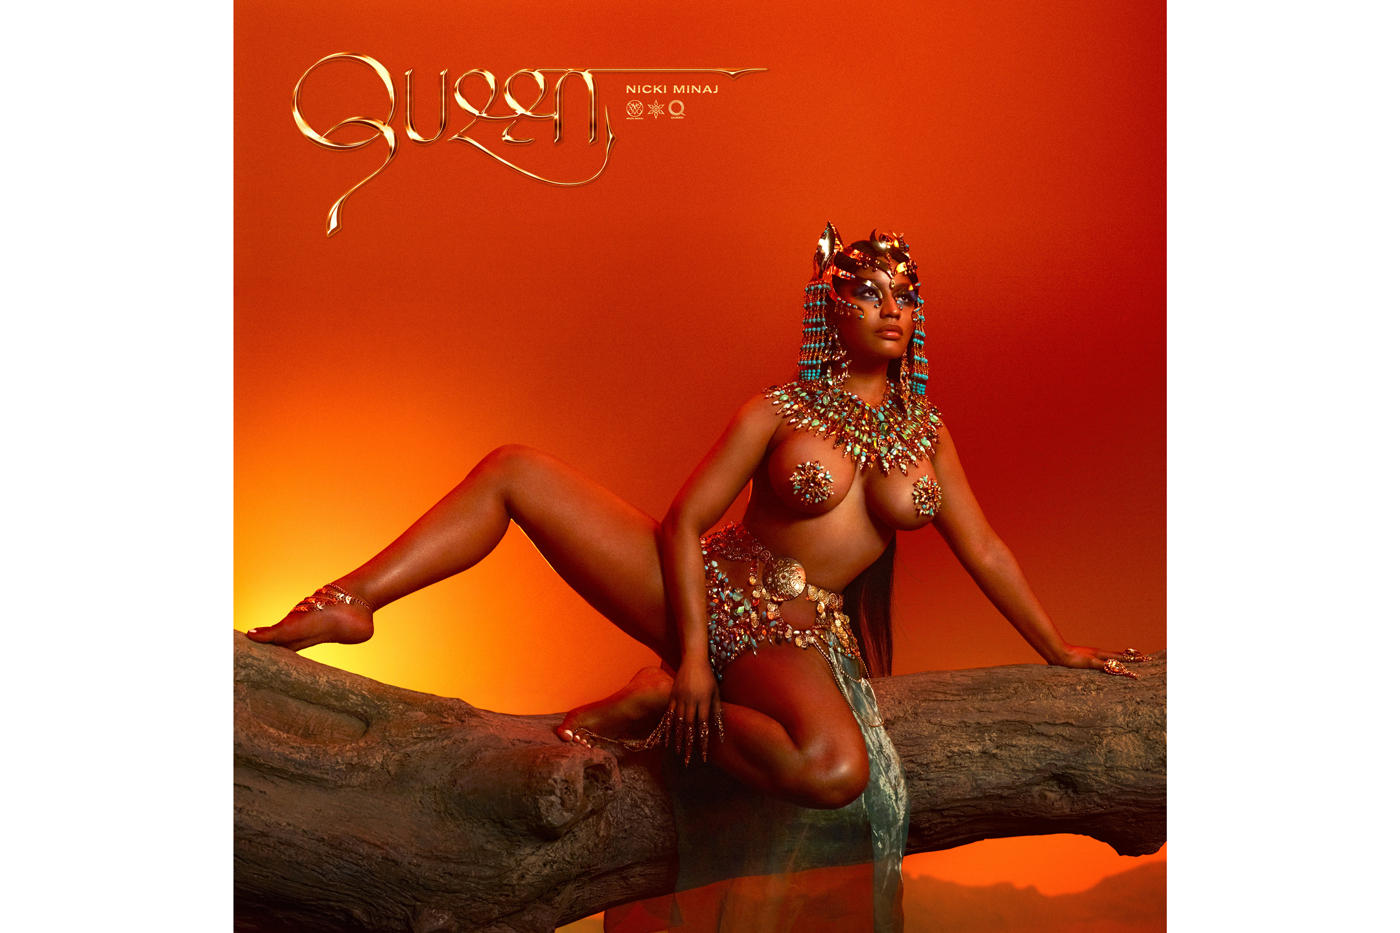 https%3A%2F%2Fhypebeast.com%2Fimage%2F2018%2F08%2Fnicki-minaj-queen-stream-0 Nicki Minaj Queen